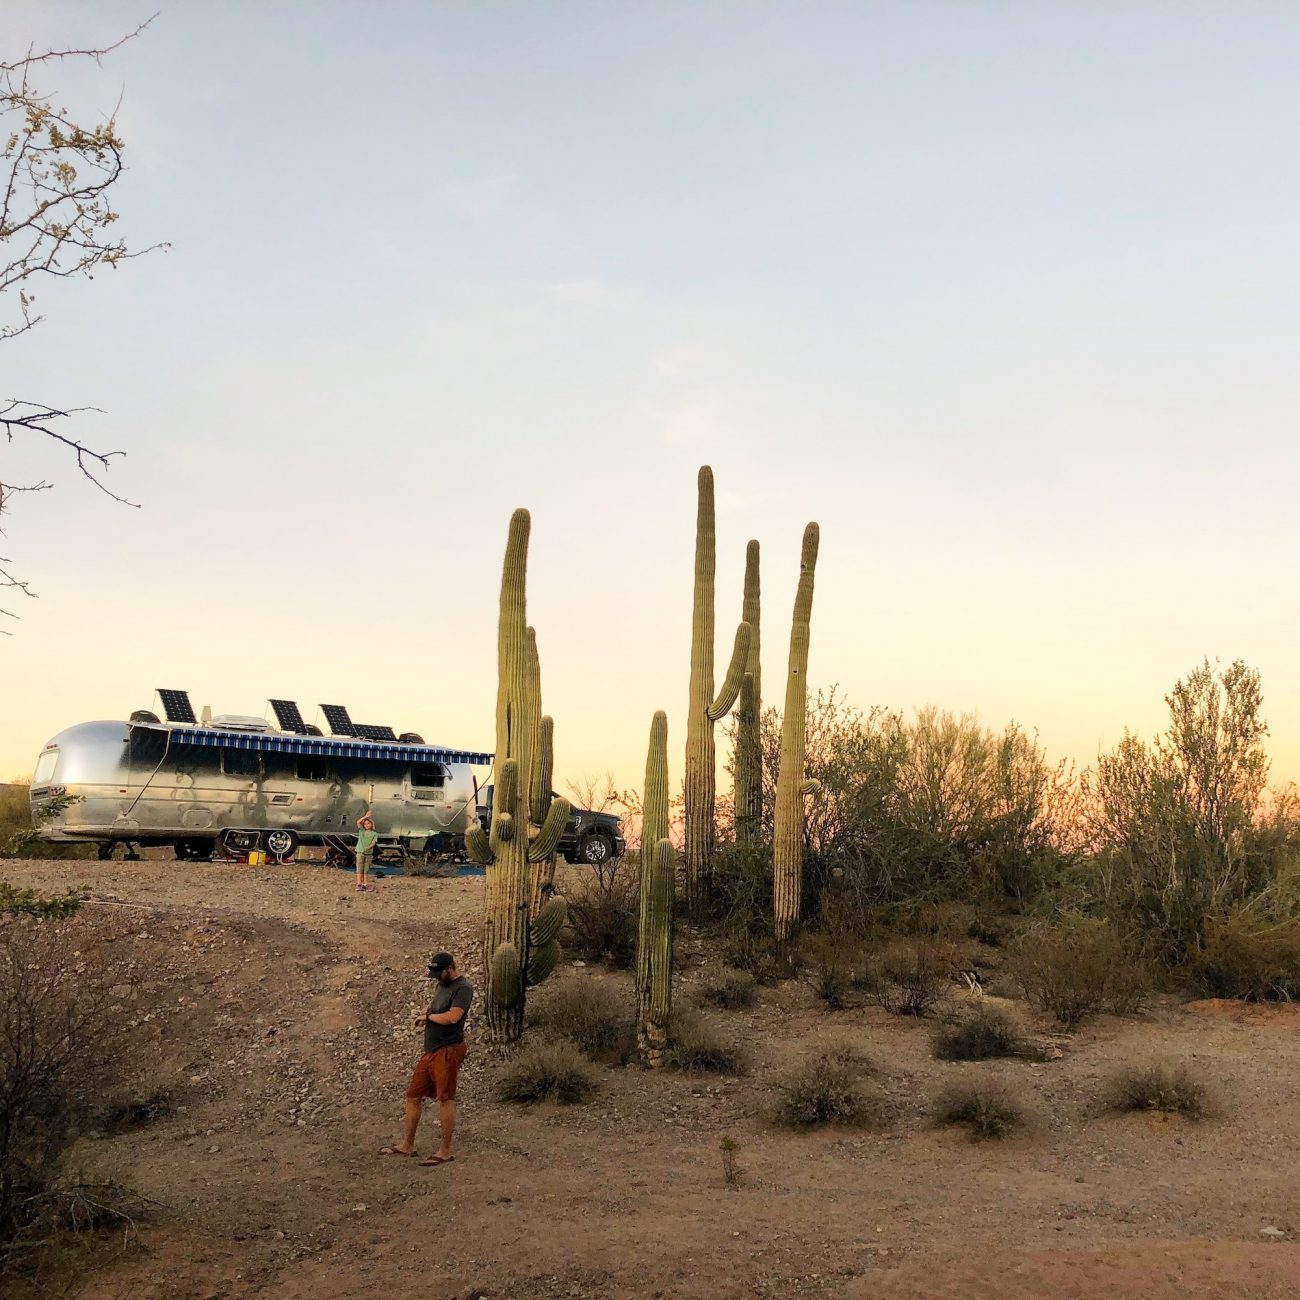 Airstream up on hill at sunset near cactus